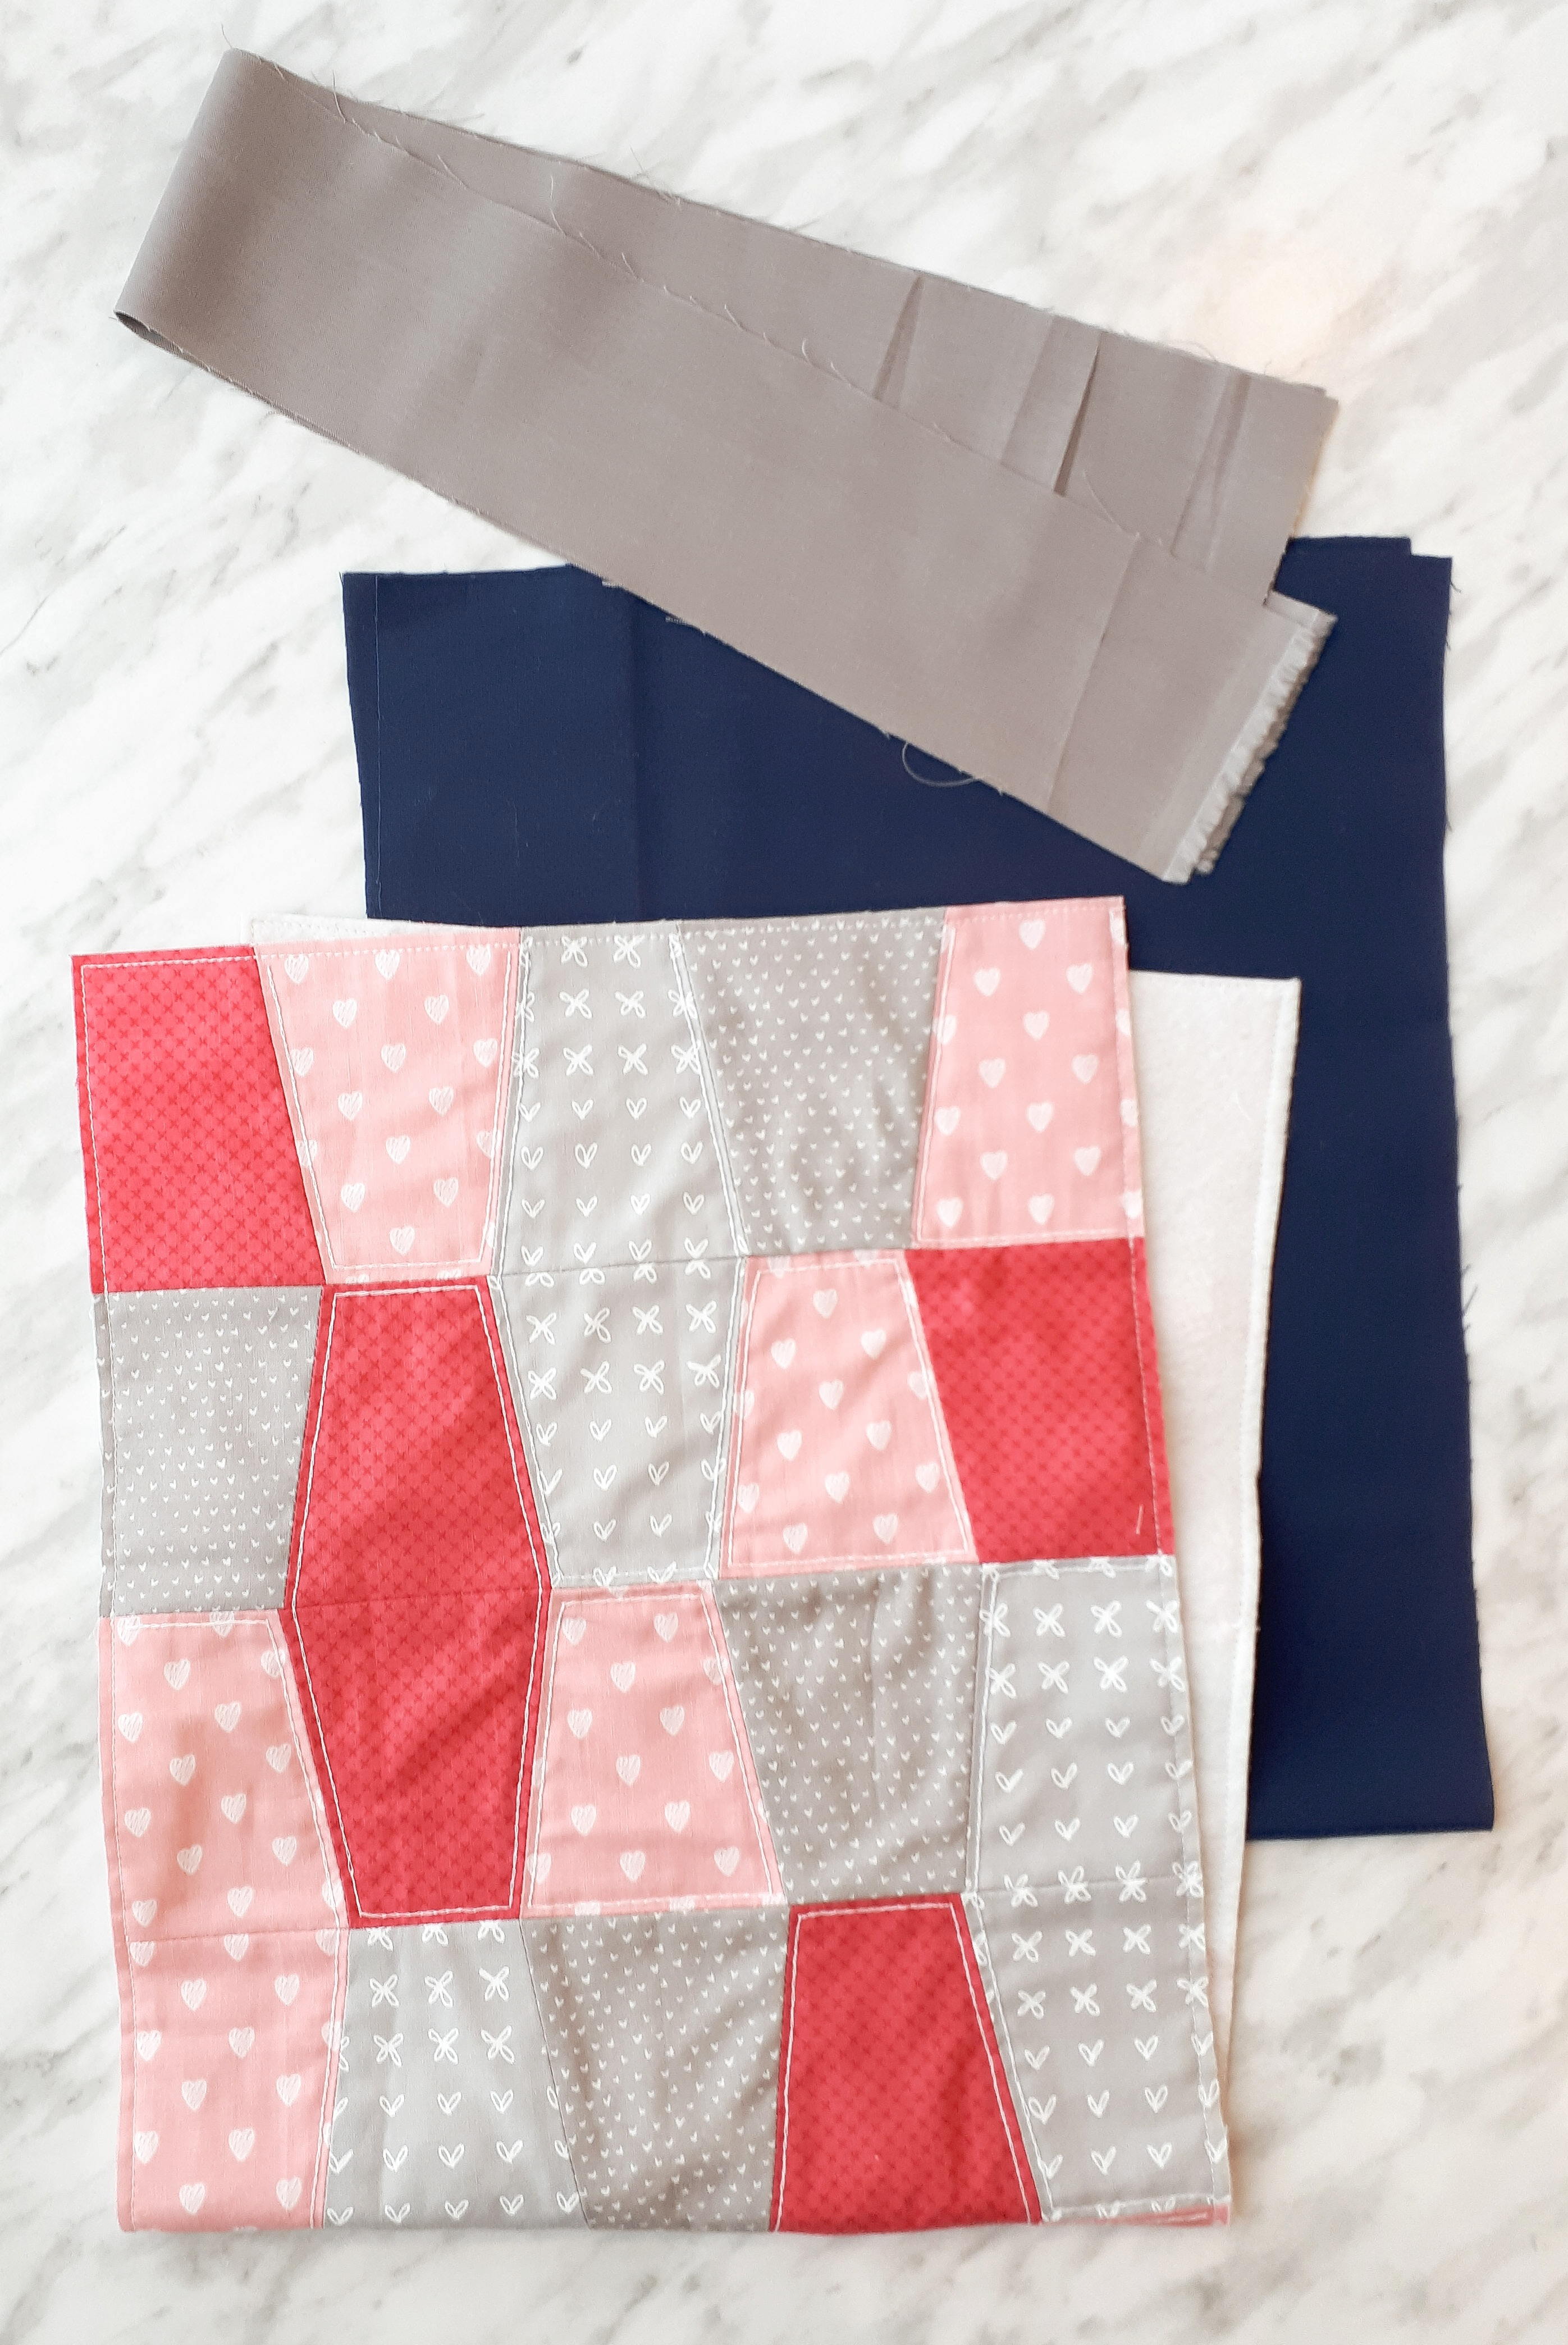 Quilted topper for a diy laptop bag